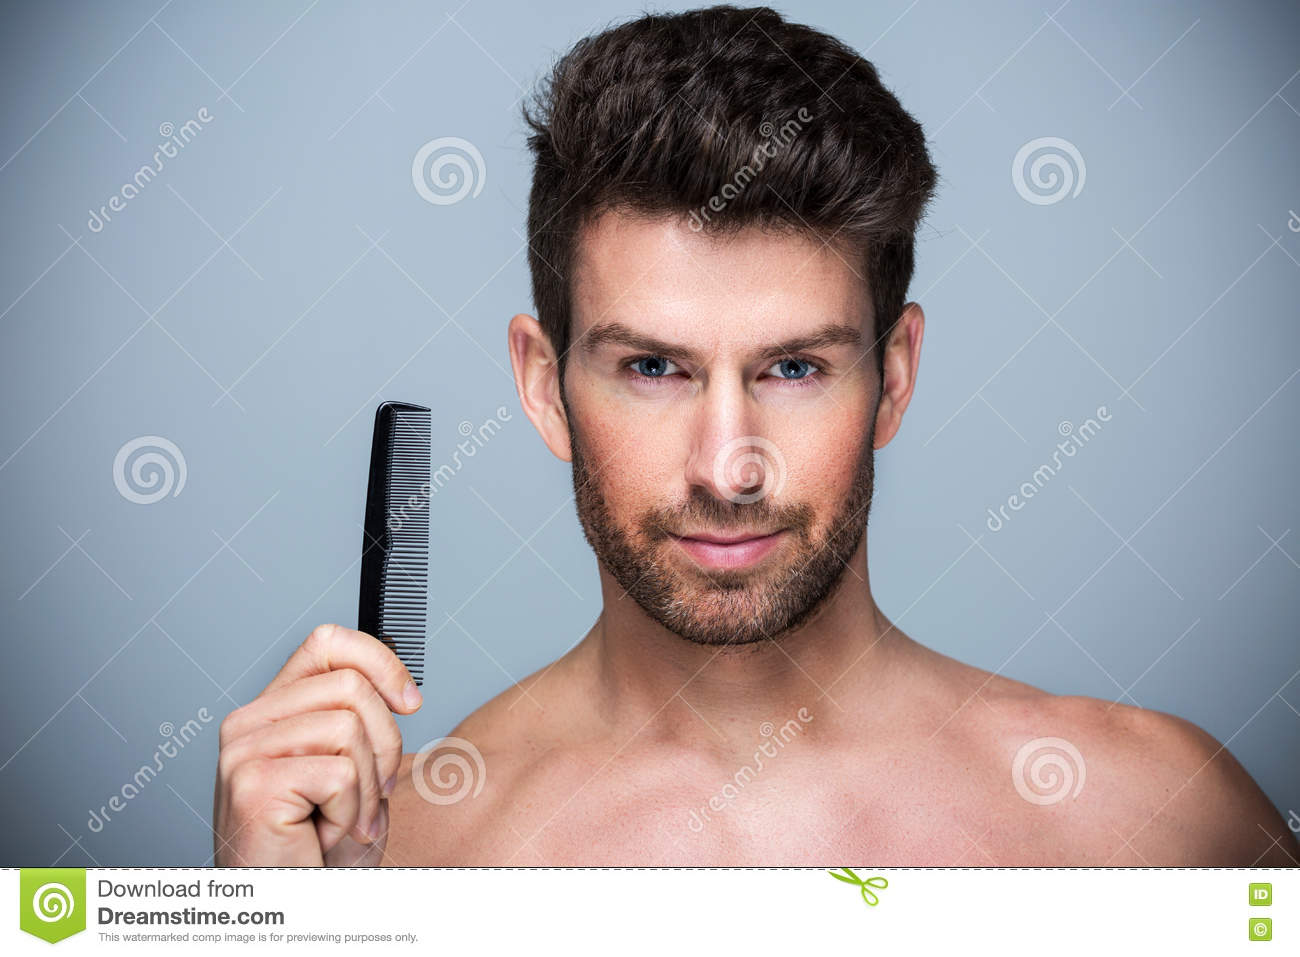 Man Combing His Hair Stock Photo Image Of Combing Comb